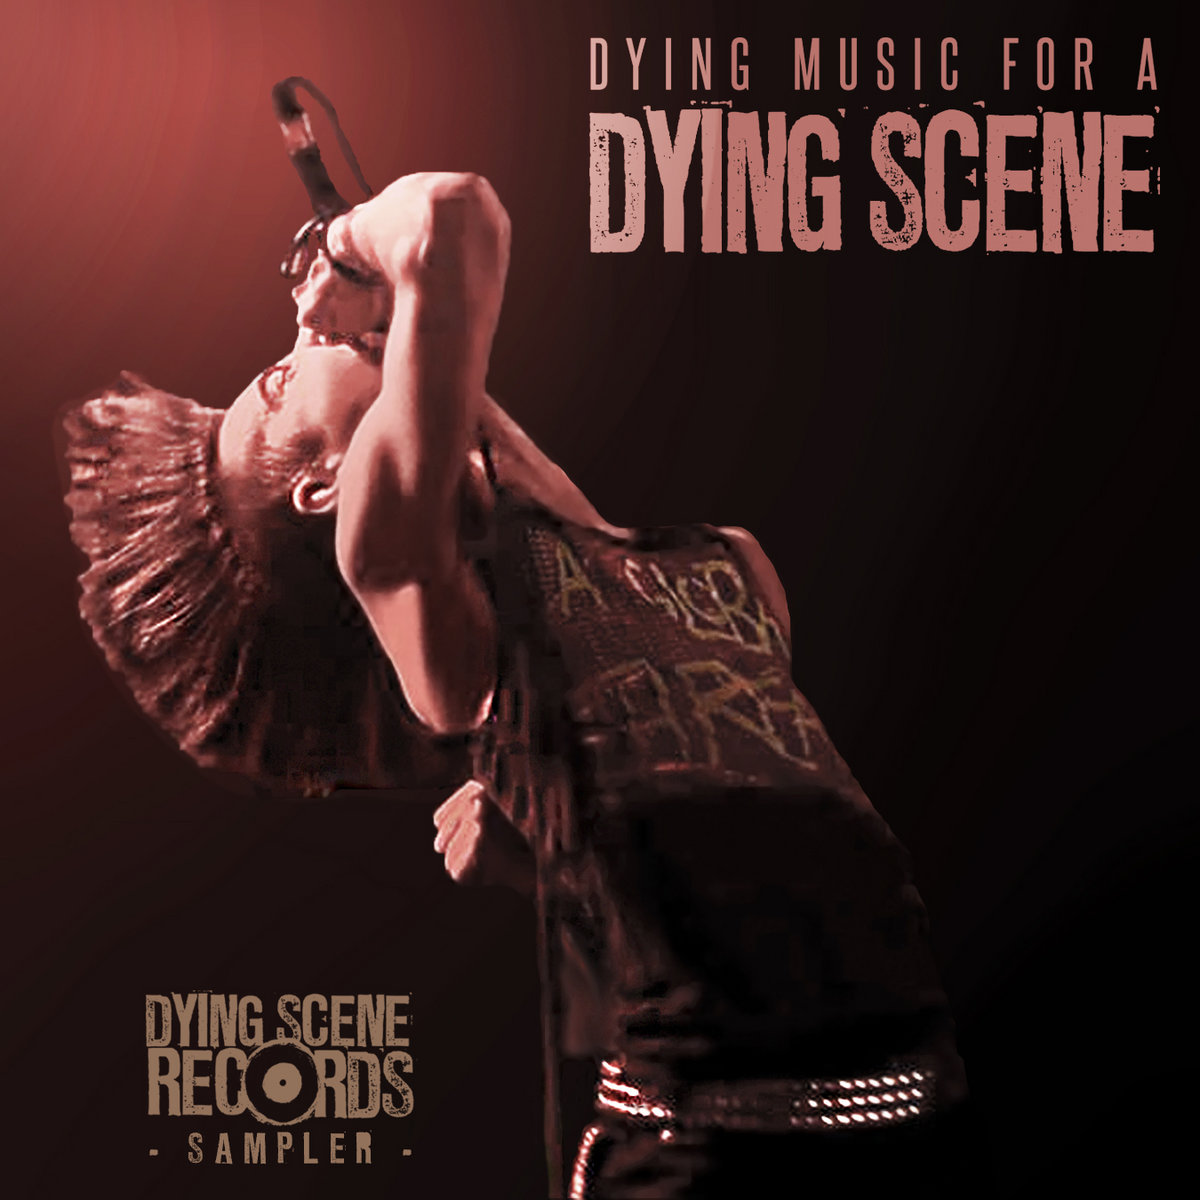 Music Dying Scene Records